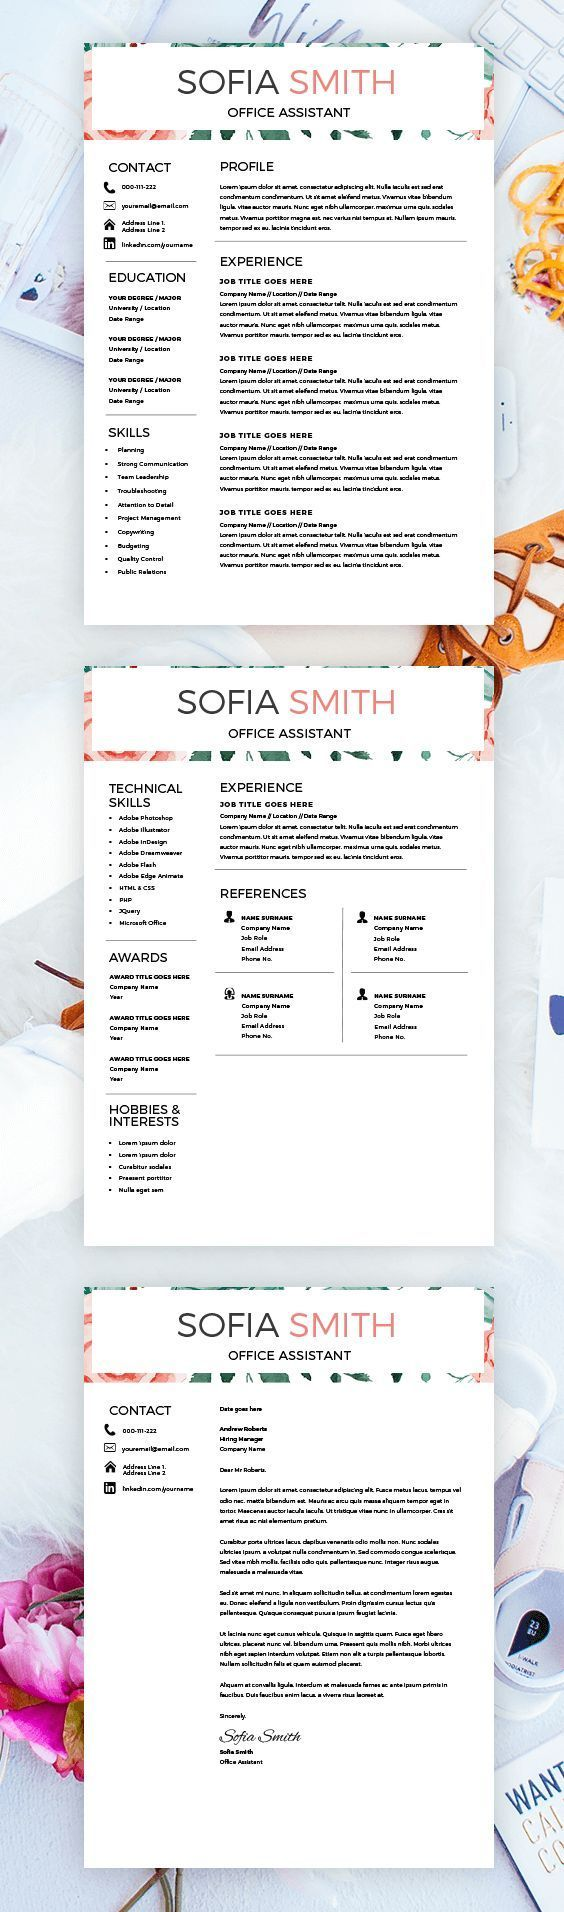 Resume For Female  Cv Design  Resume Download  Ms Word Resume For